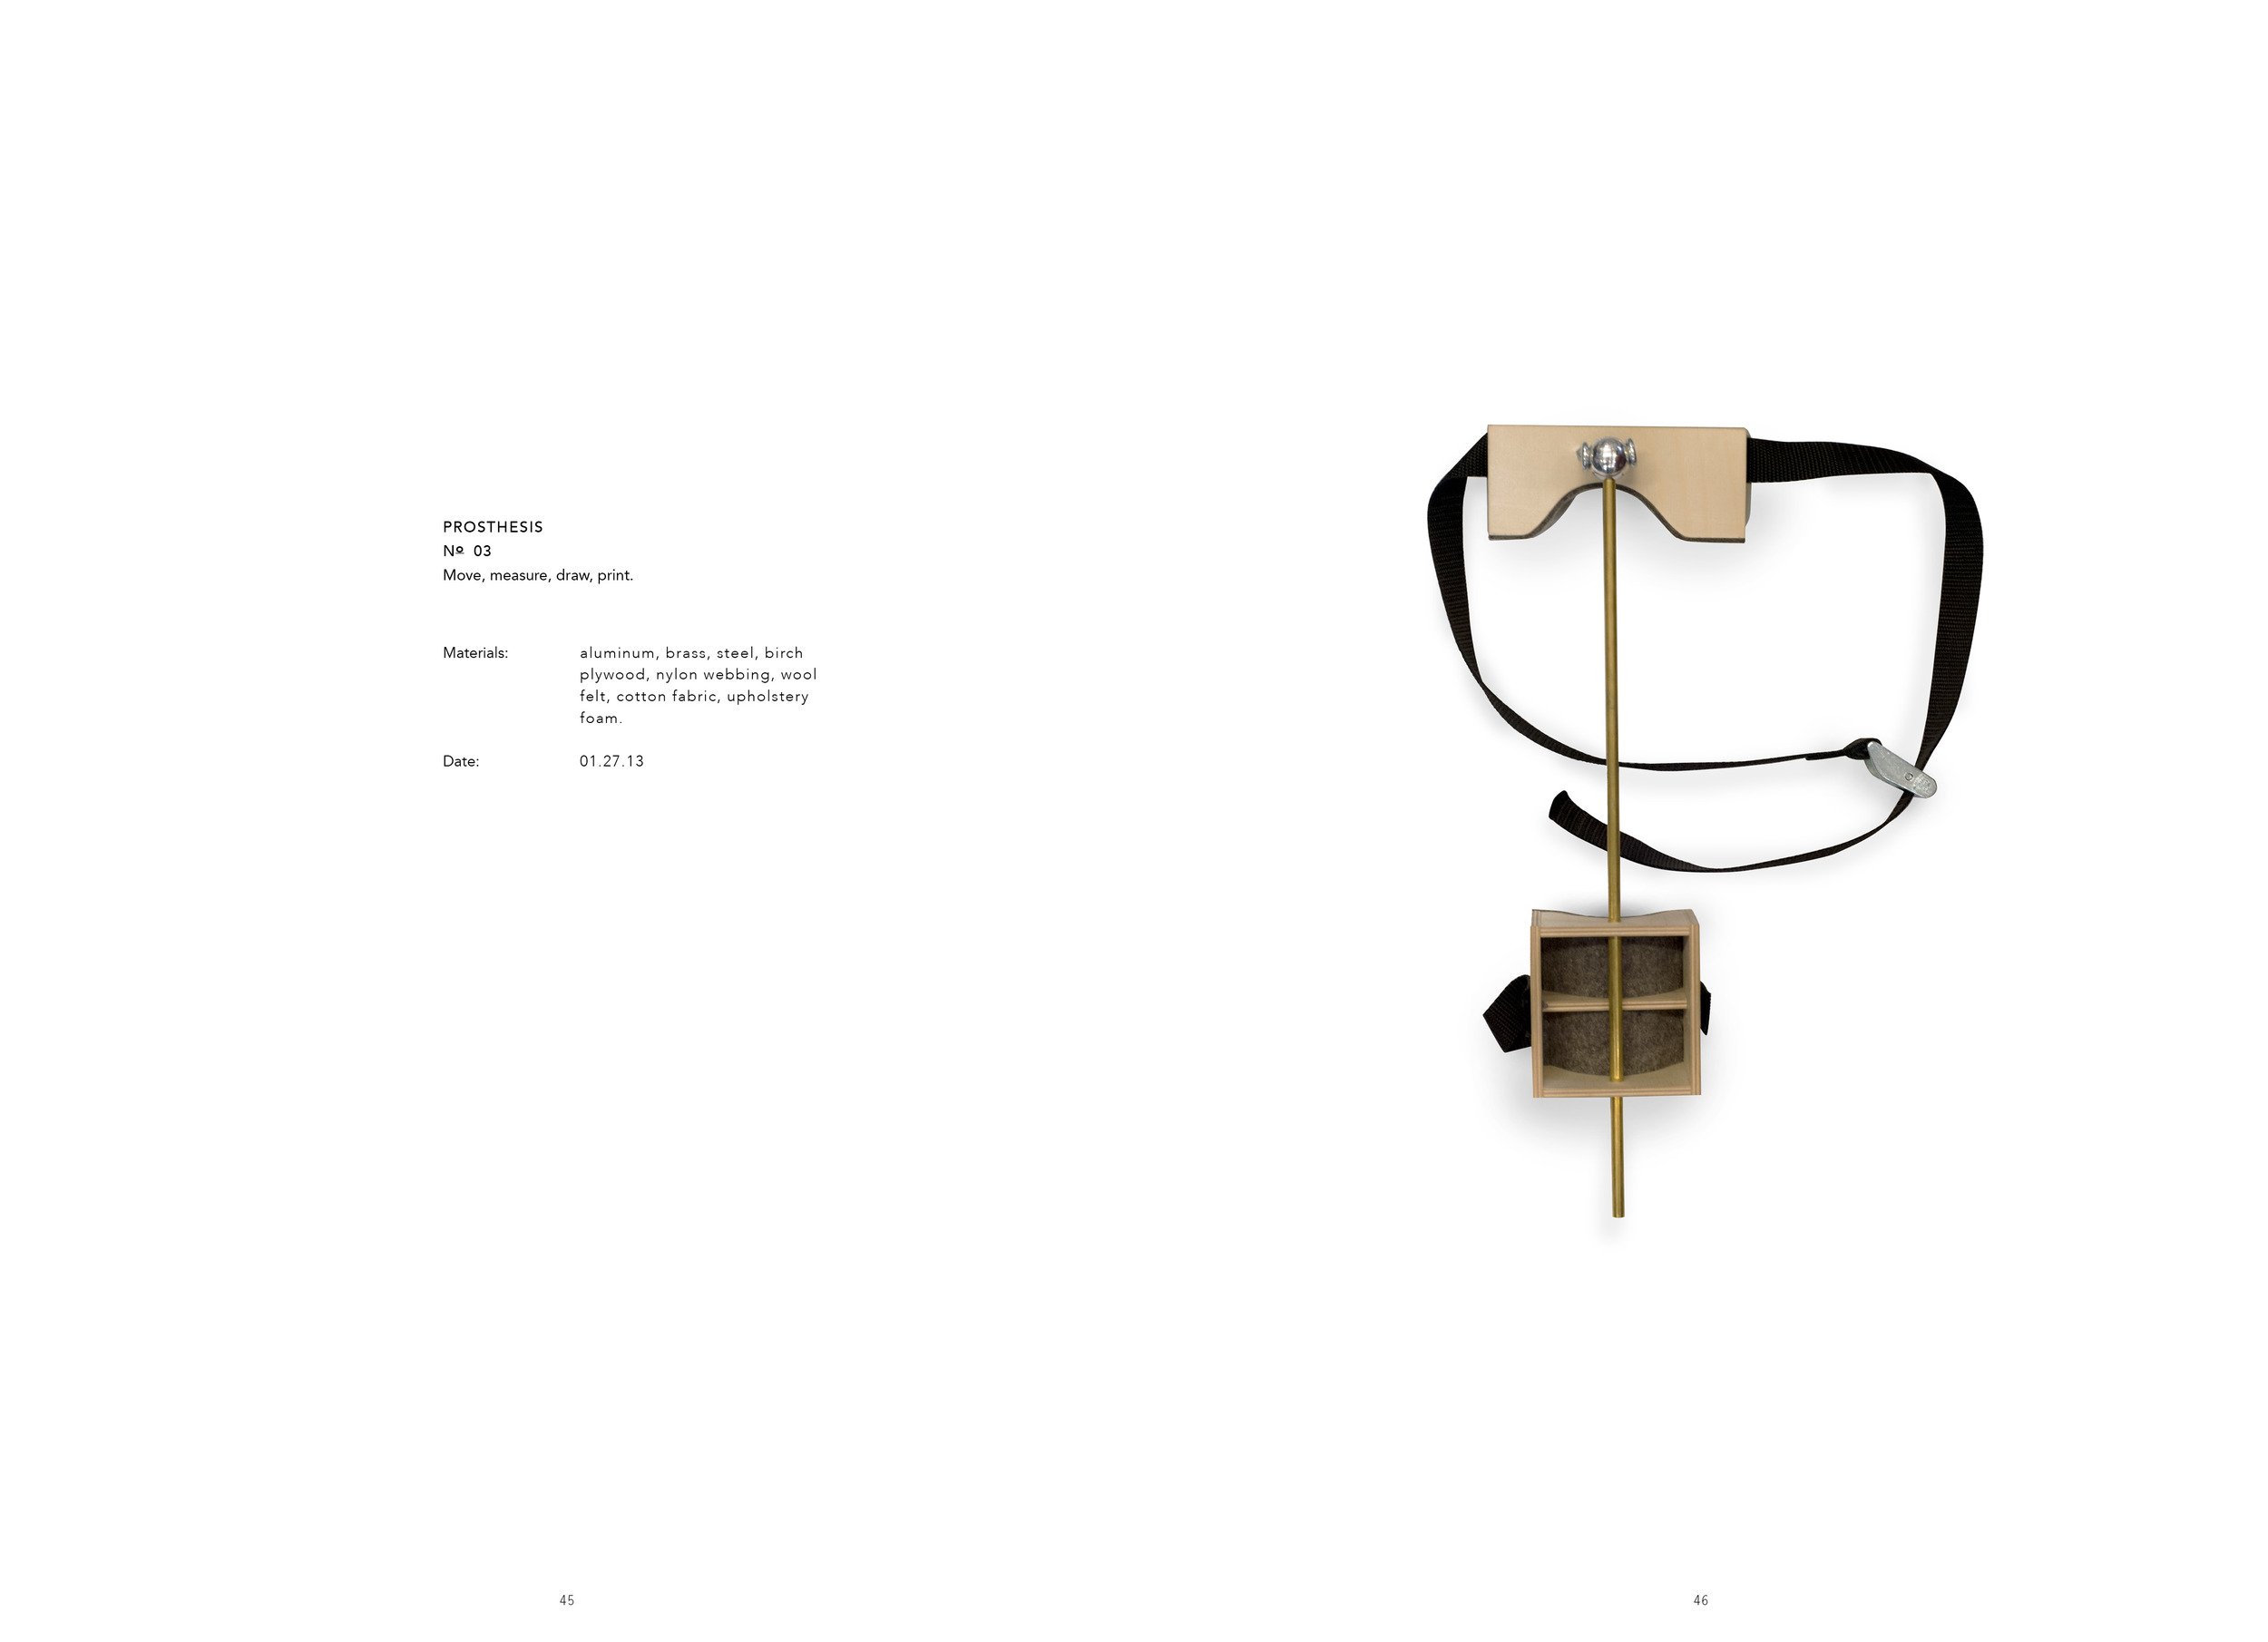 Prosthesis - RISD MArch Thesis - Burgess Voshell29.jpg